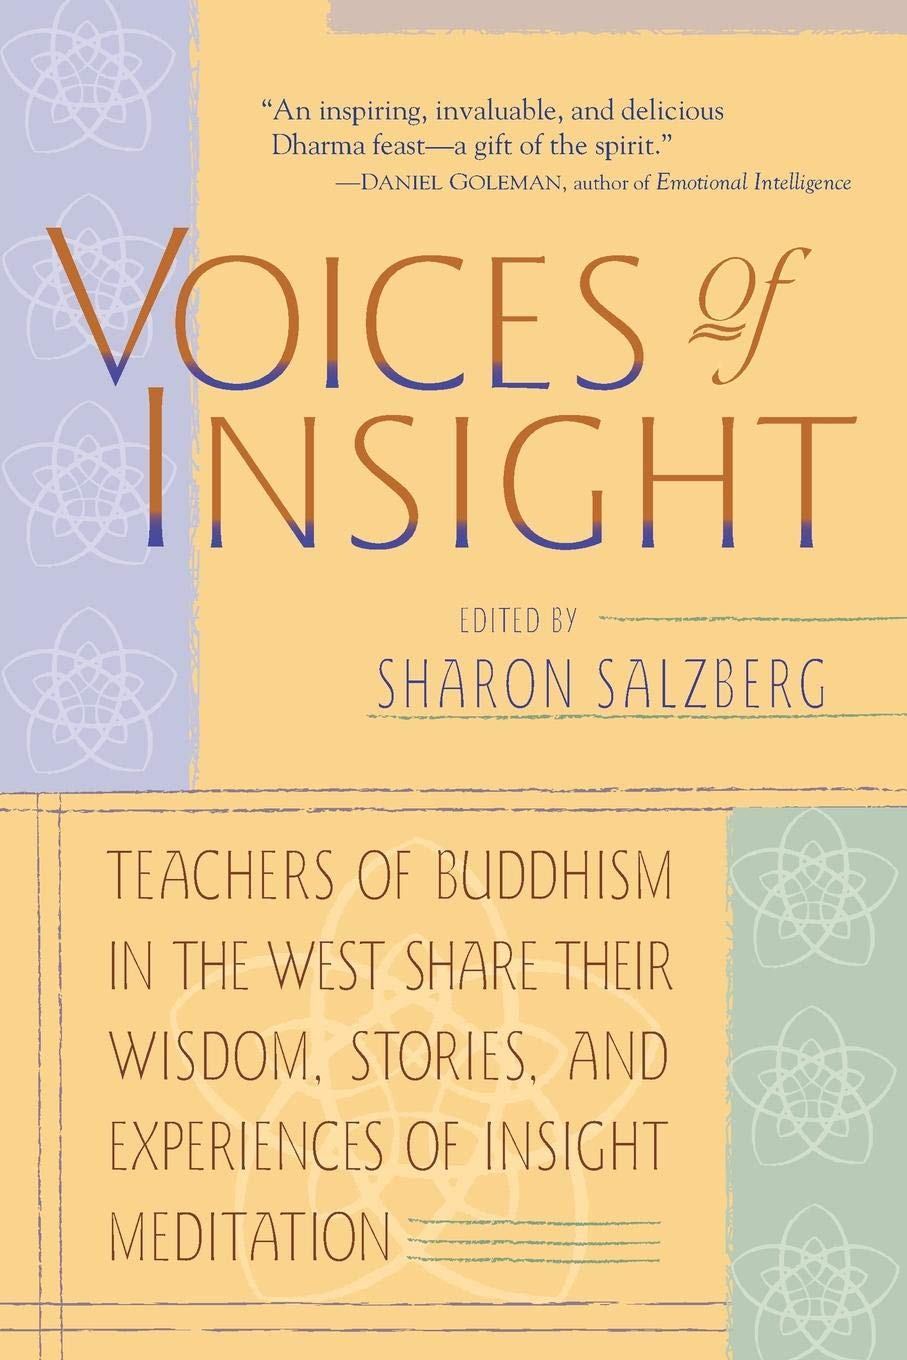 Sharon Salzberg Voices of Insight cover art